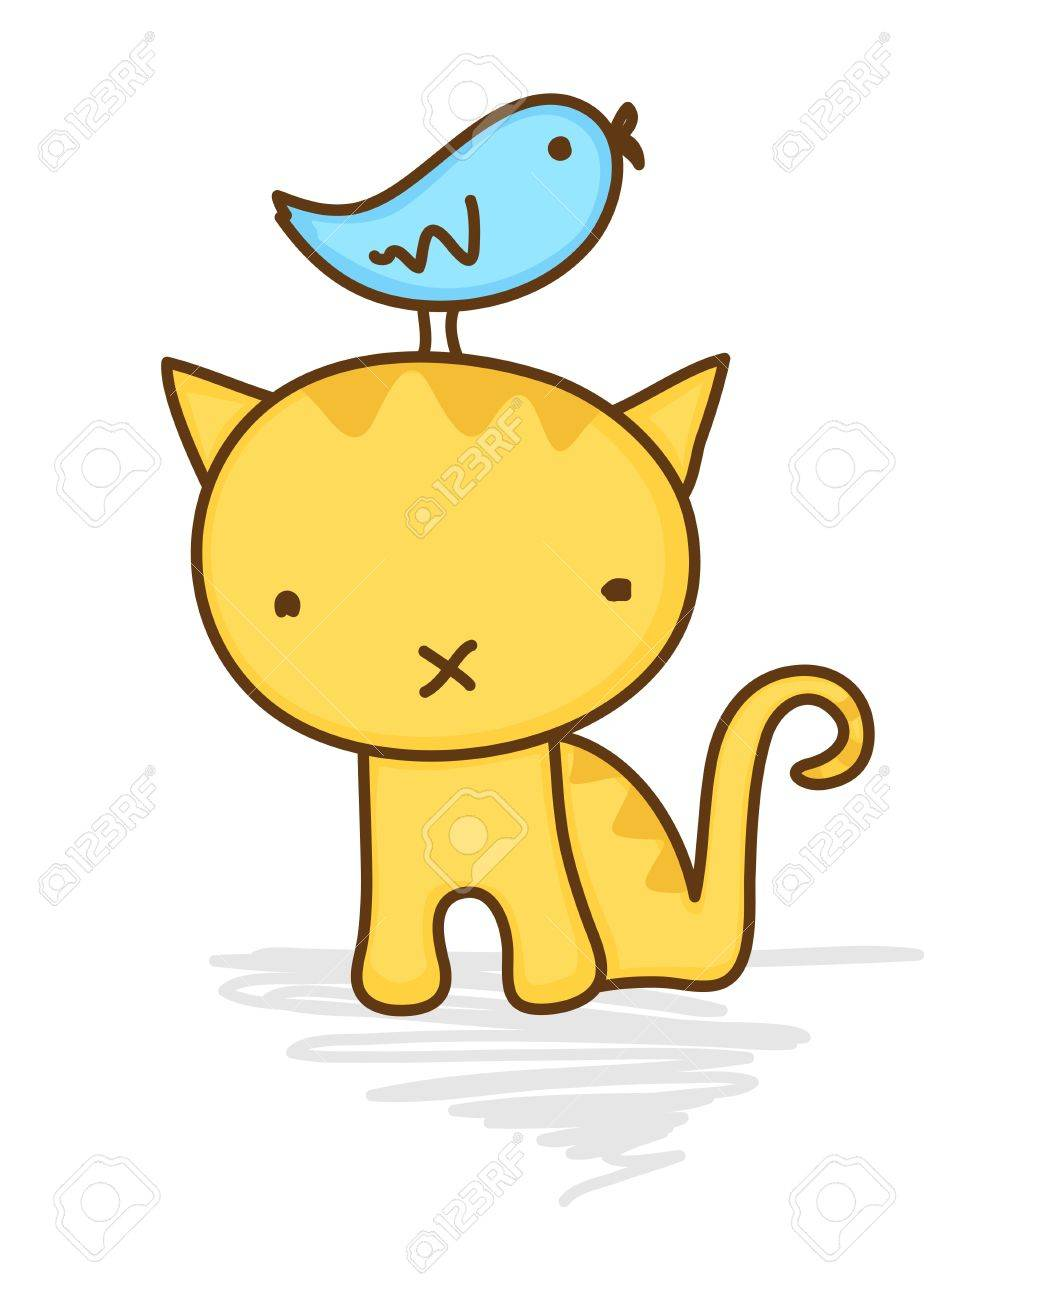 Cute illustration of a bird sitting on a cat's head Stock Vector - 9833599